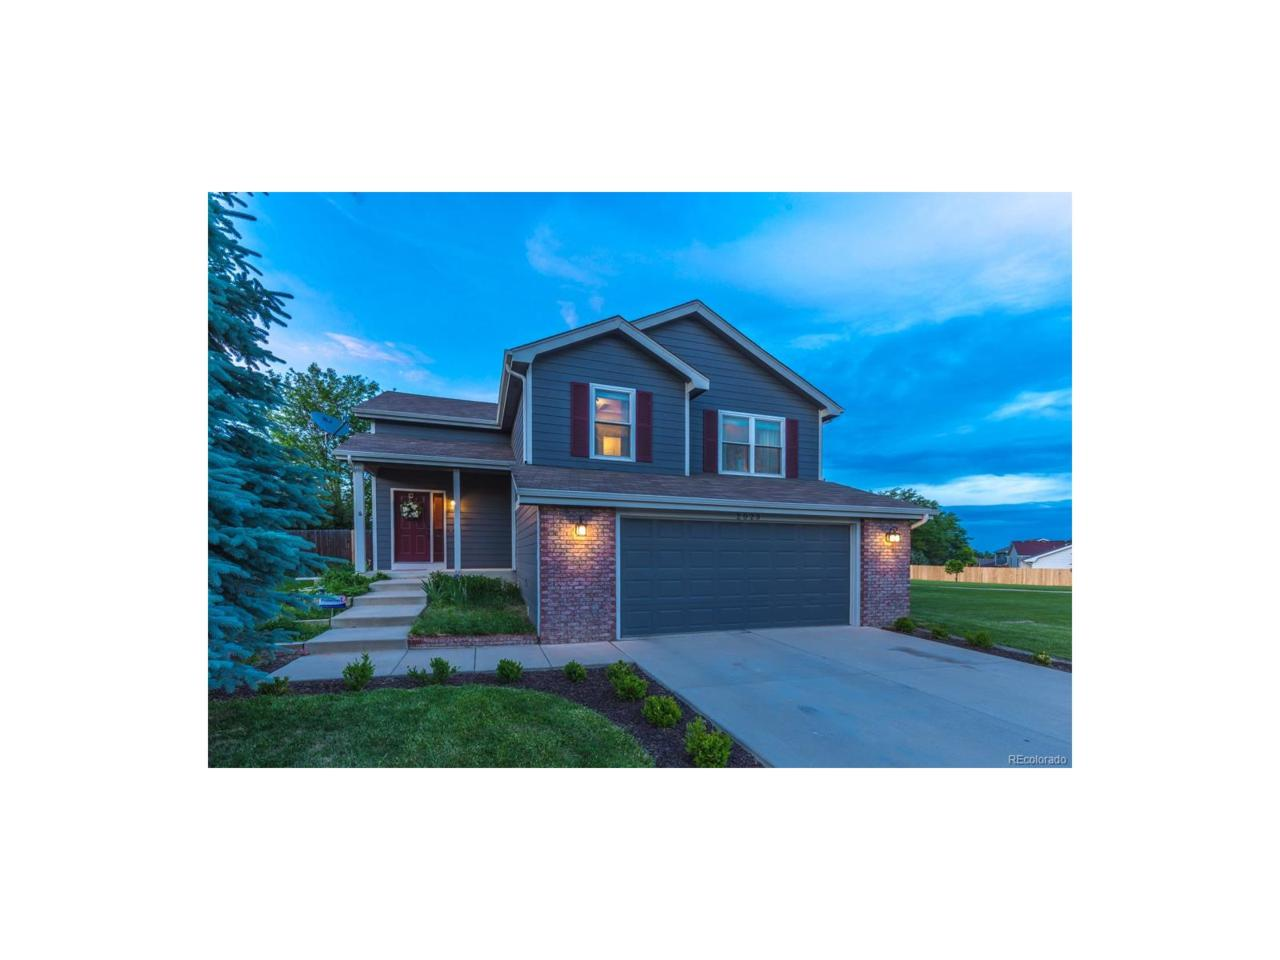 2023 Overland Drive, Johnstown, CO 80534 (MLS #1552470) :: 8z Real Estate